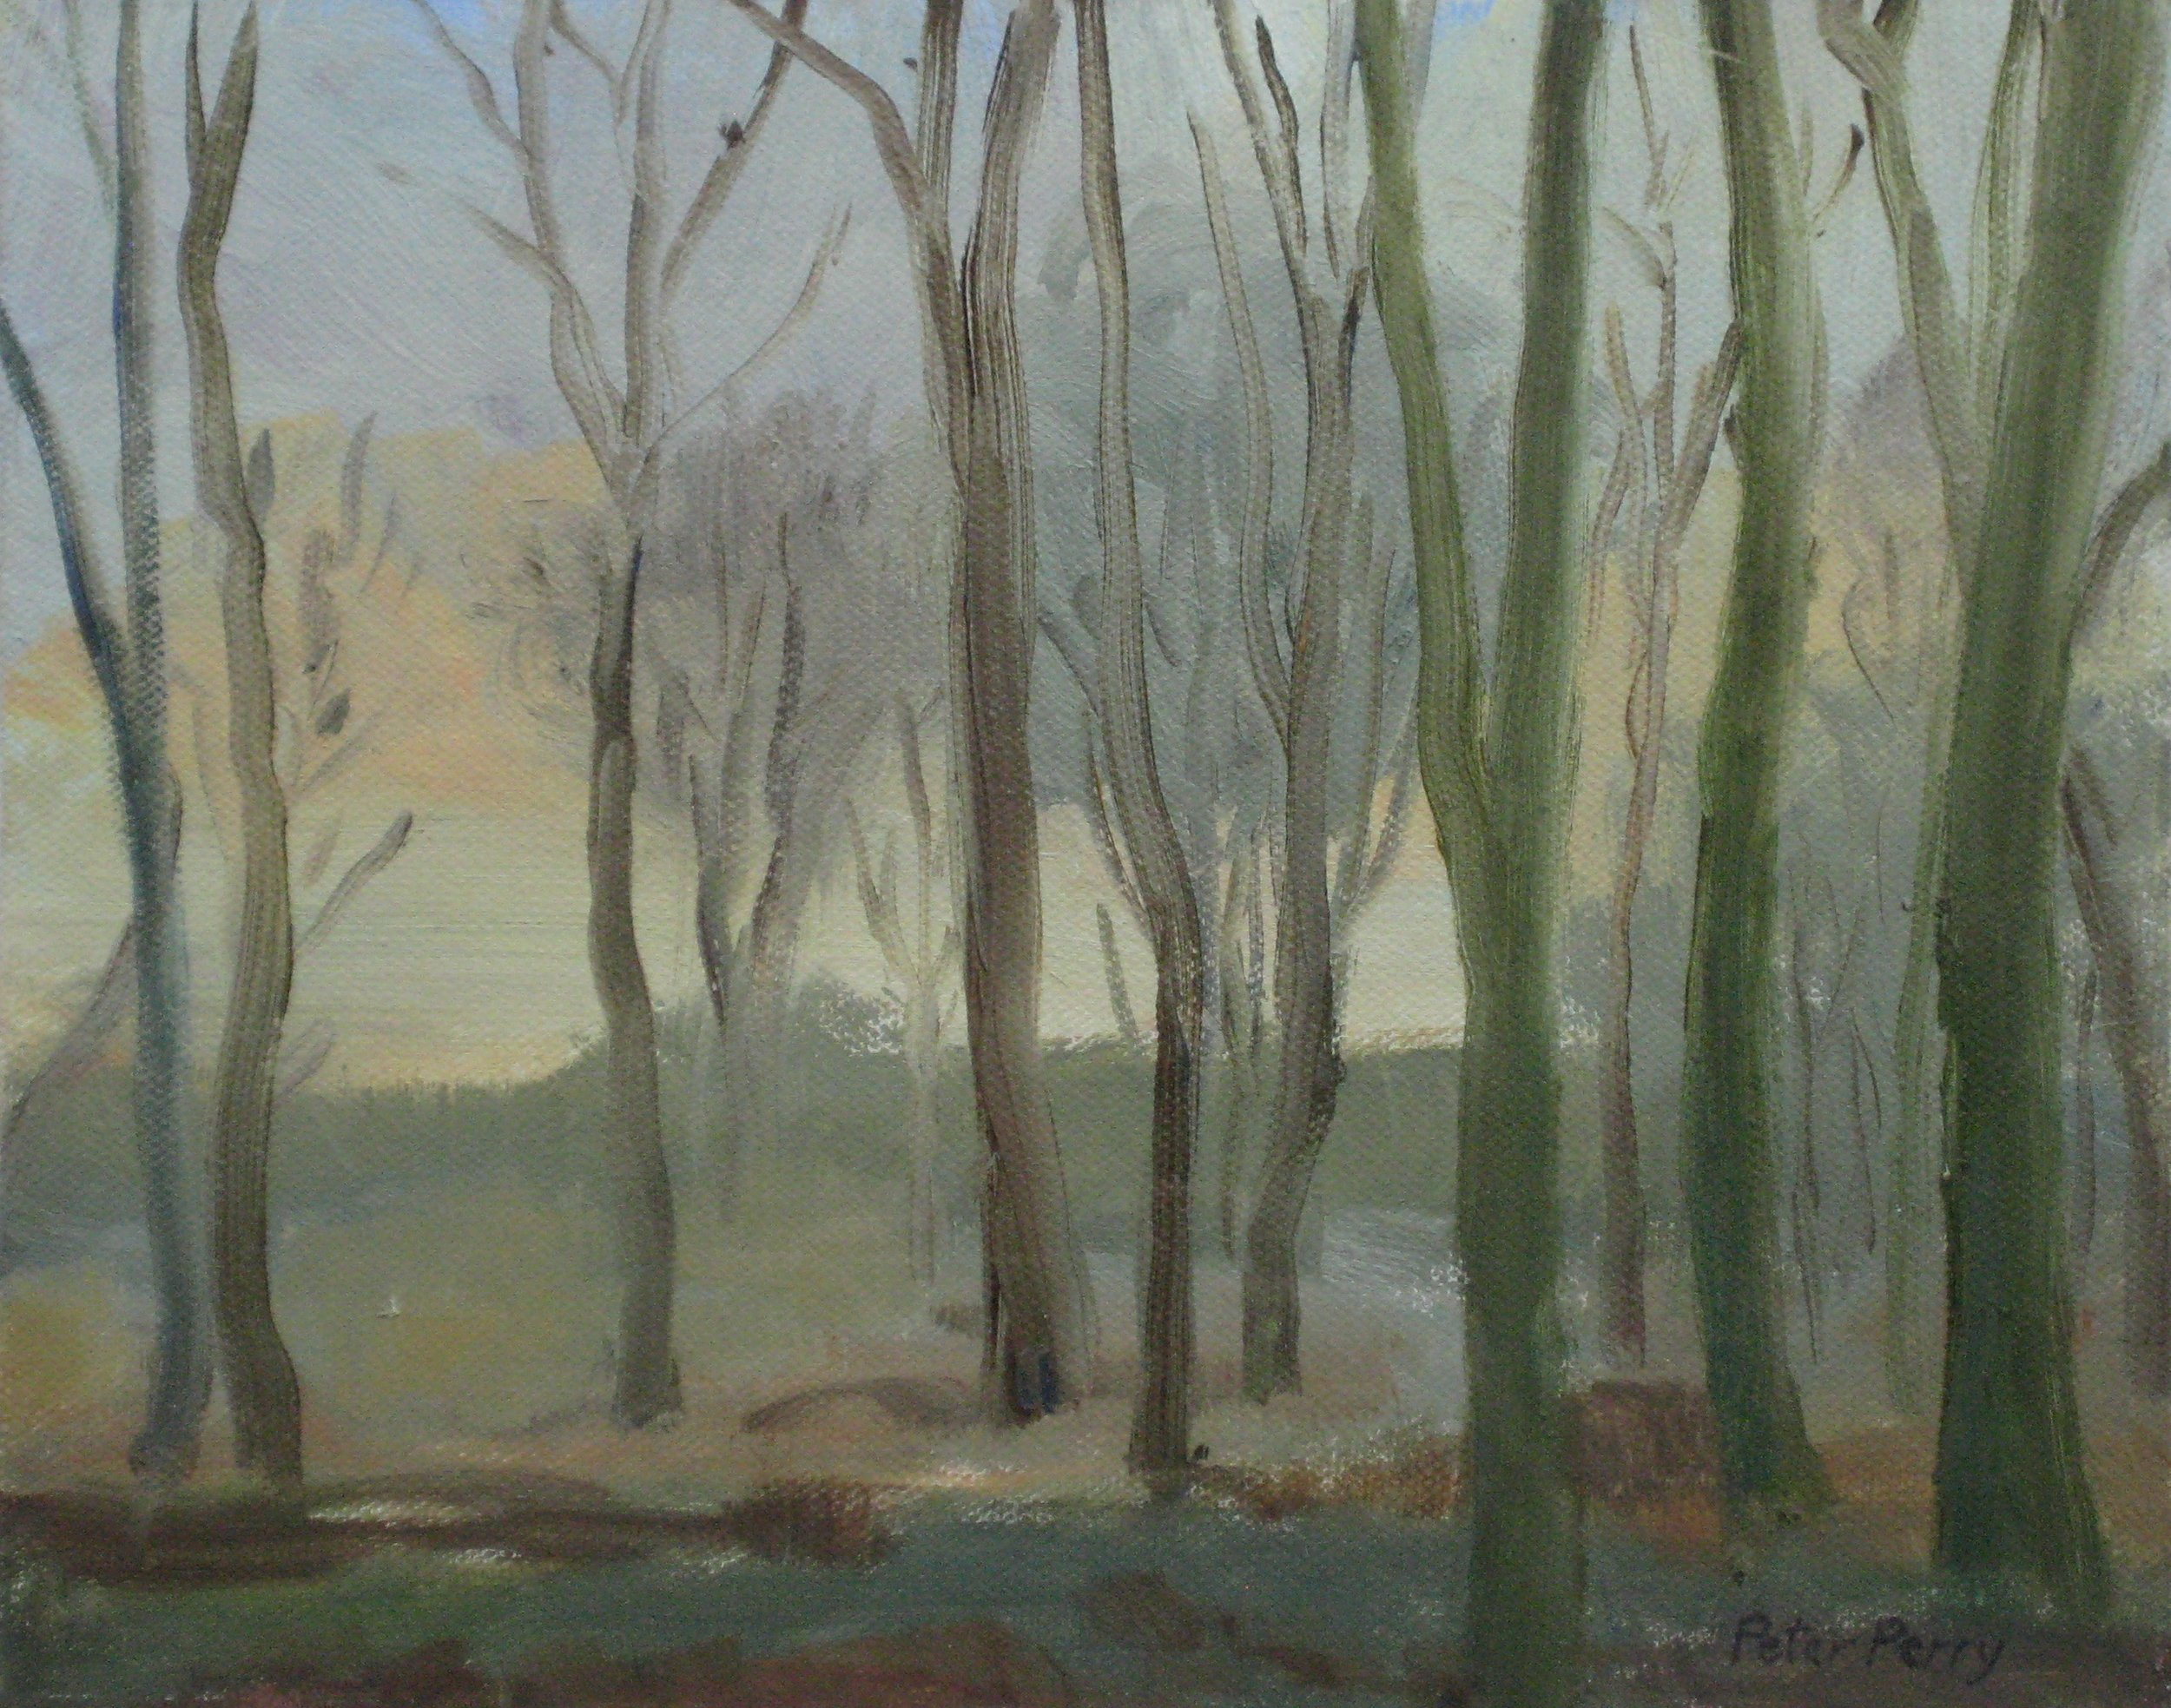 TREVELLOE WOOD, WINTER II